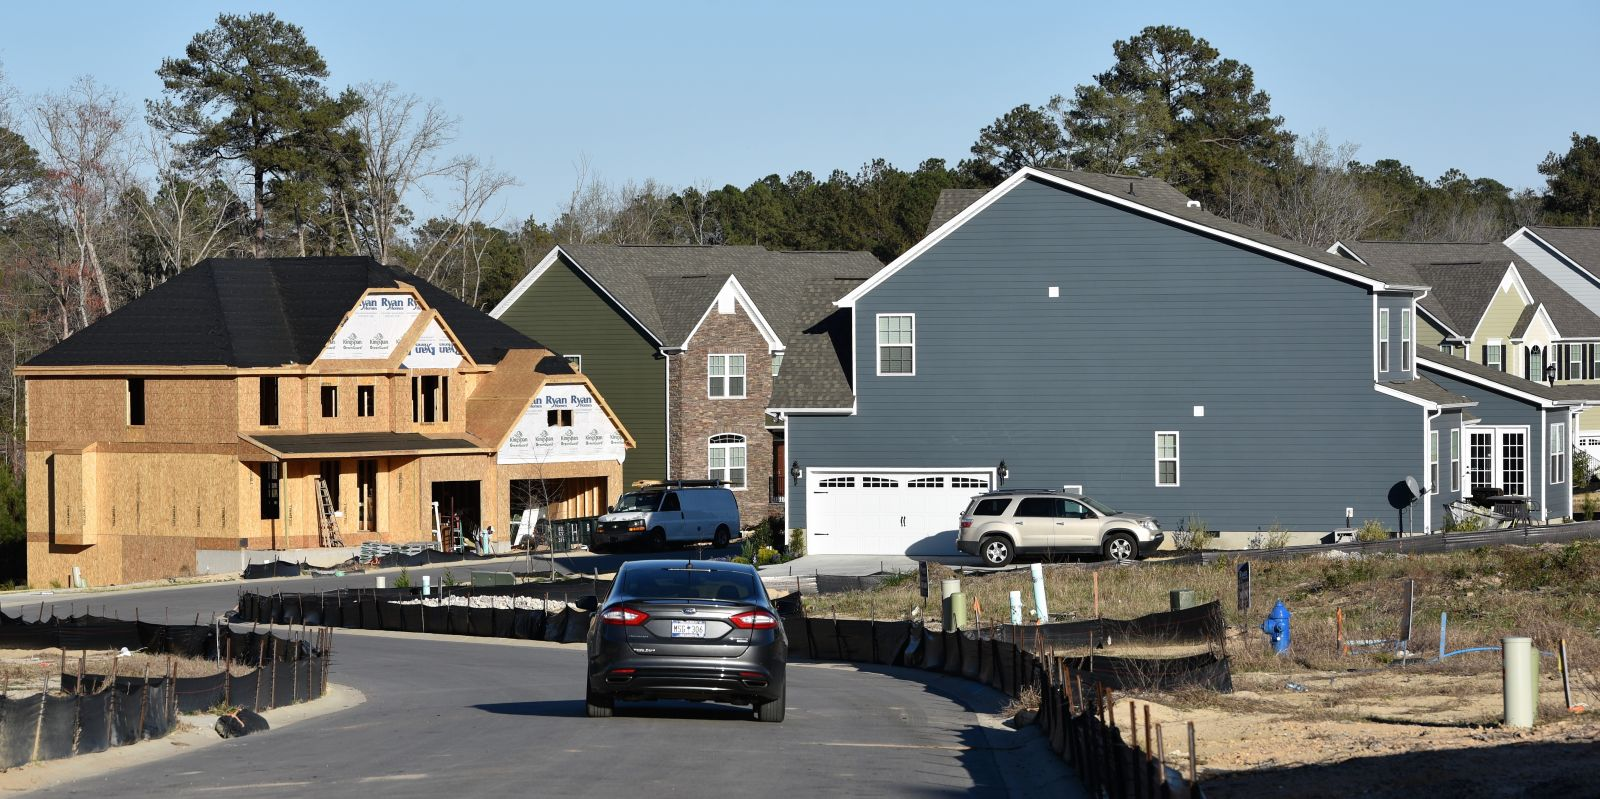 New homes are popping up around the Lexington area as builders try to keep up with housing demands. A motorist navigates Golden Fluke Drive where a home is nearing completion across the street from recently occupied residences.